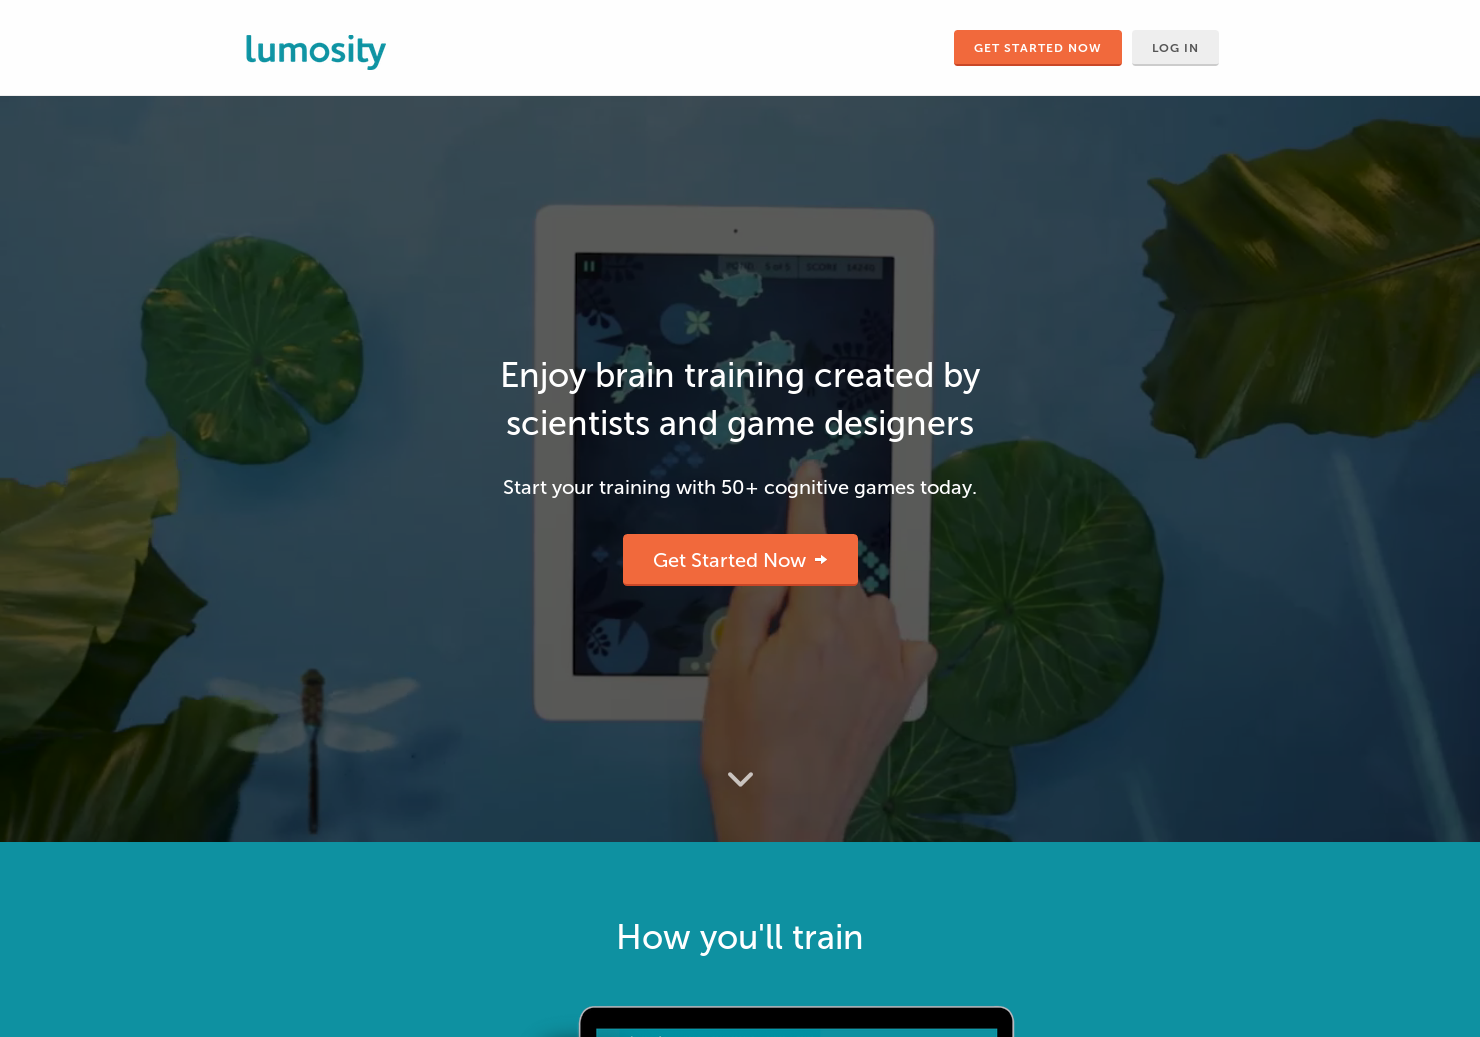 Lumosity - Enjoy brain training created by scientists and game